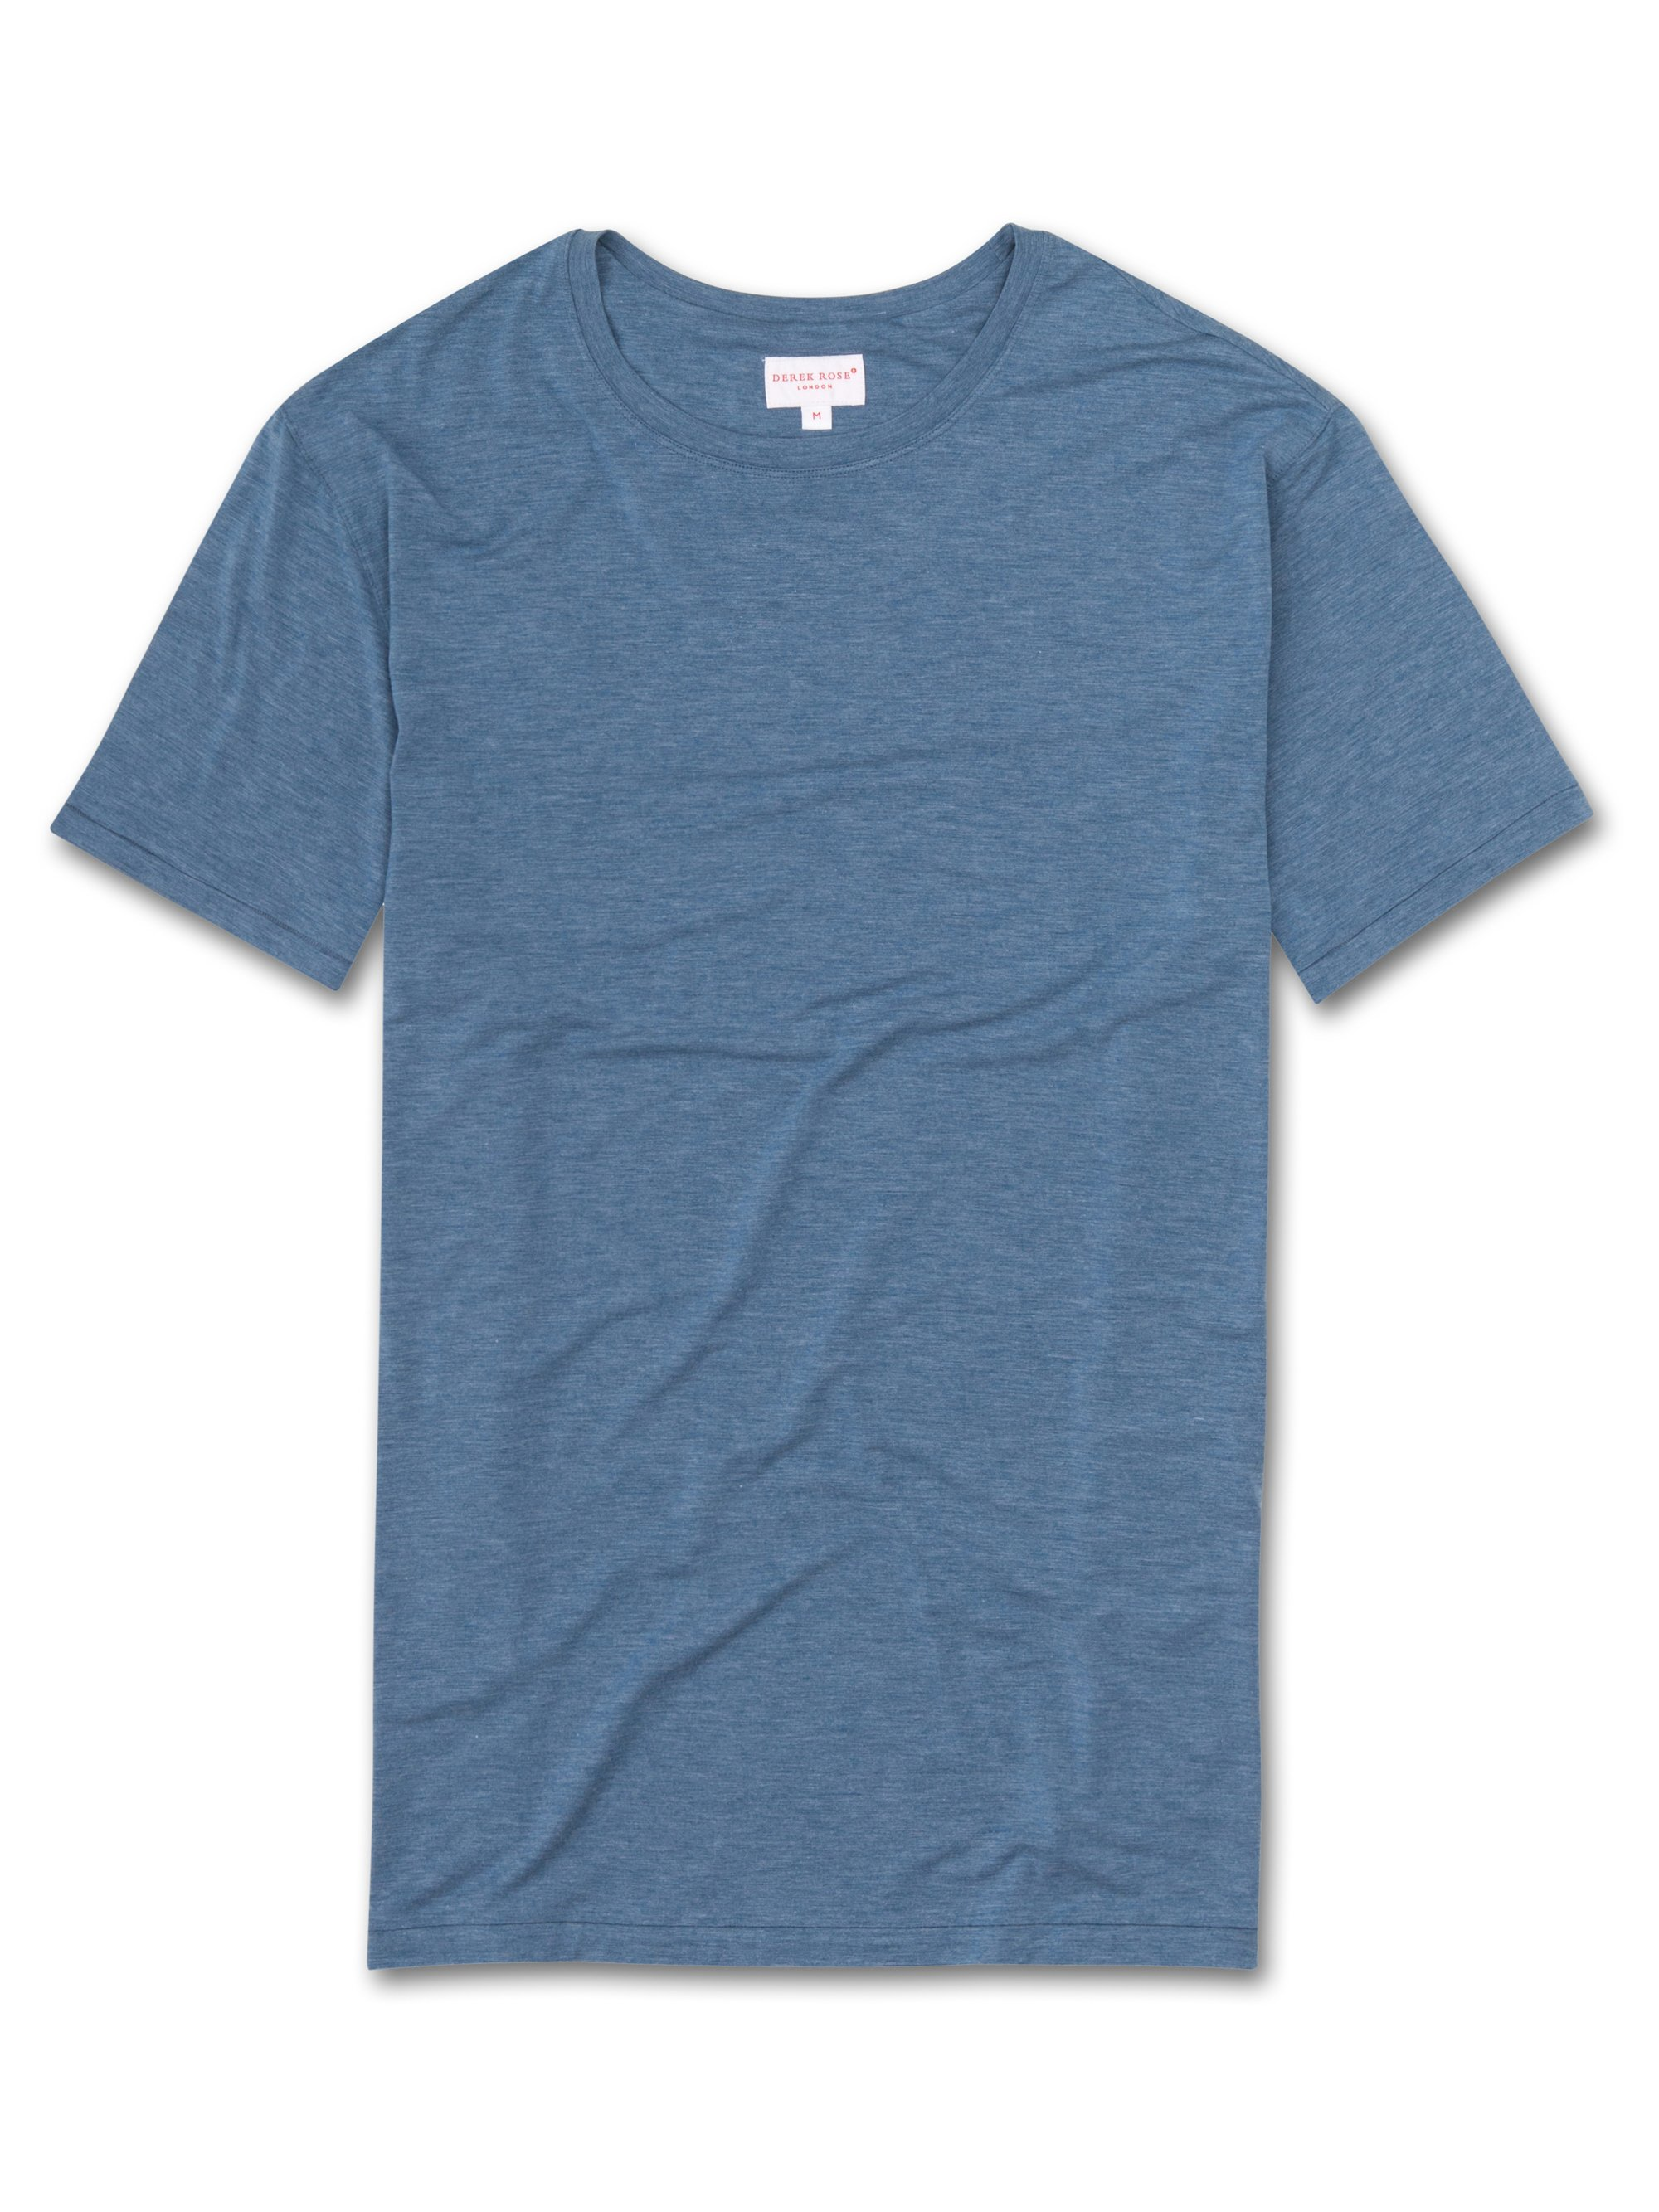 Men's Short Sleeve T-Shirt Ethan Micro Modal Stretch Sapphire